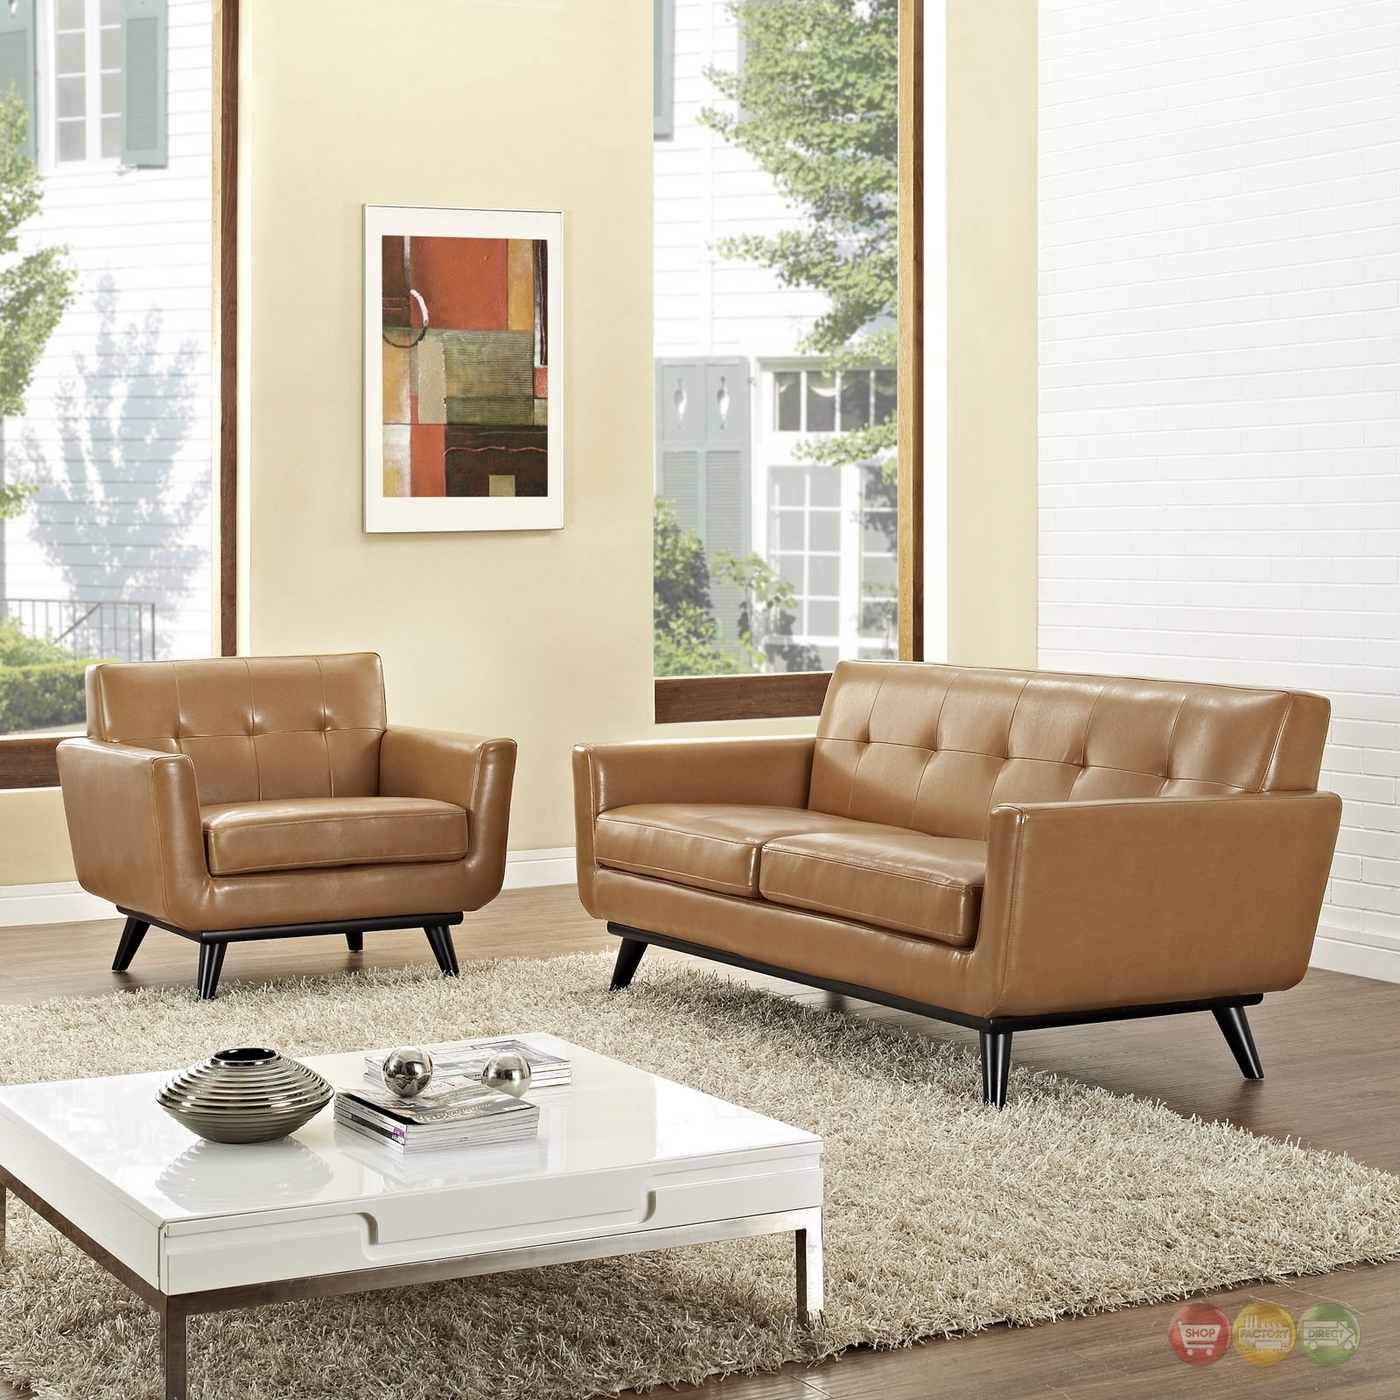 Engage Contemporary 2pc Button Tufted Leather Living Room Set Tan